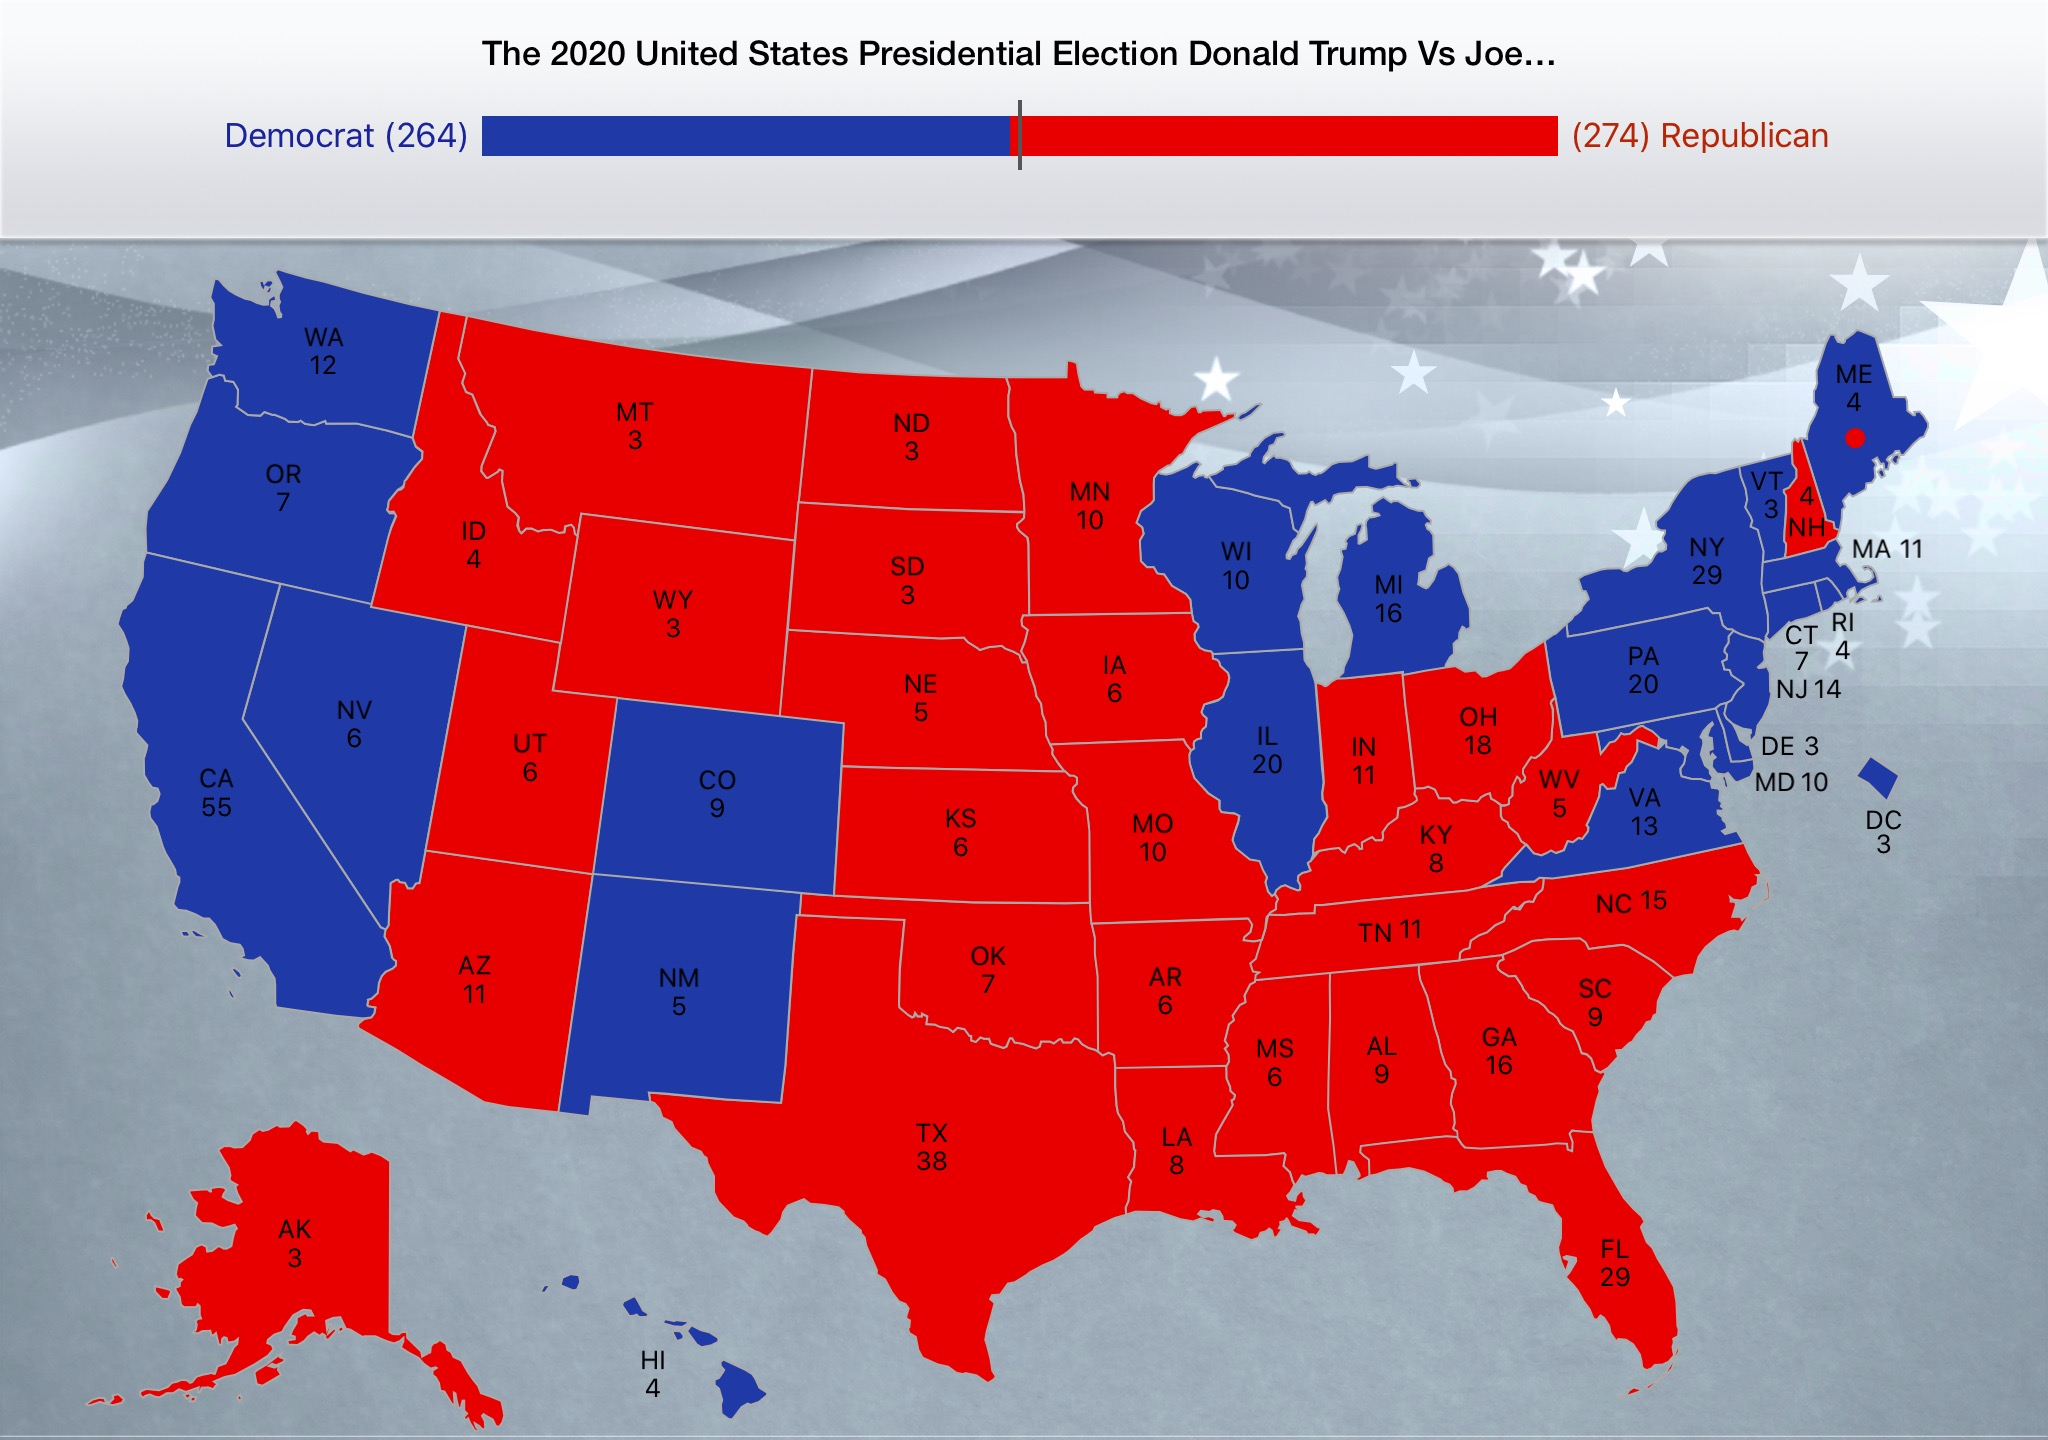 2020 United States Presidential Election (Fernando's Good Dream Or Worst Nightmare)